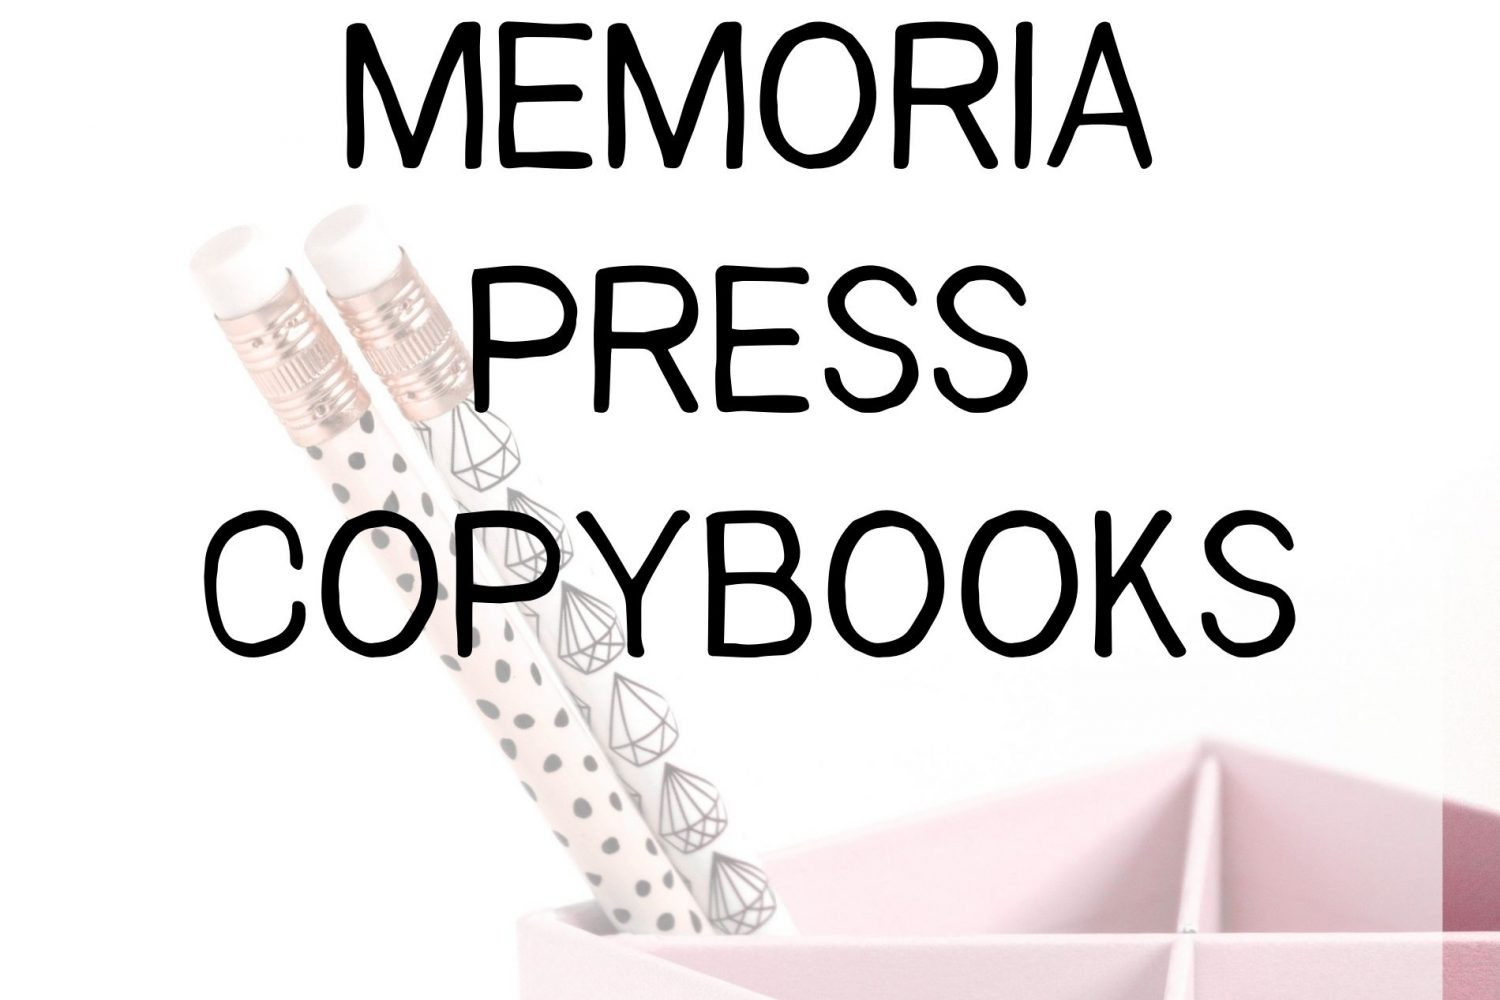 How We Use Memoria Press Copybooks